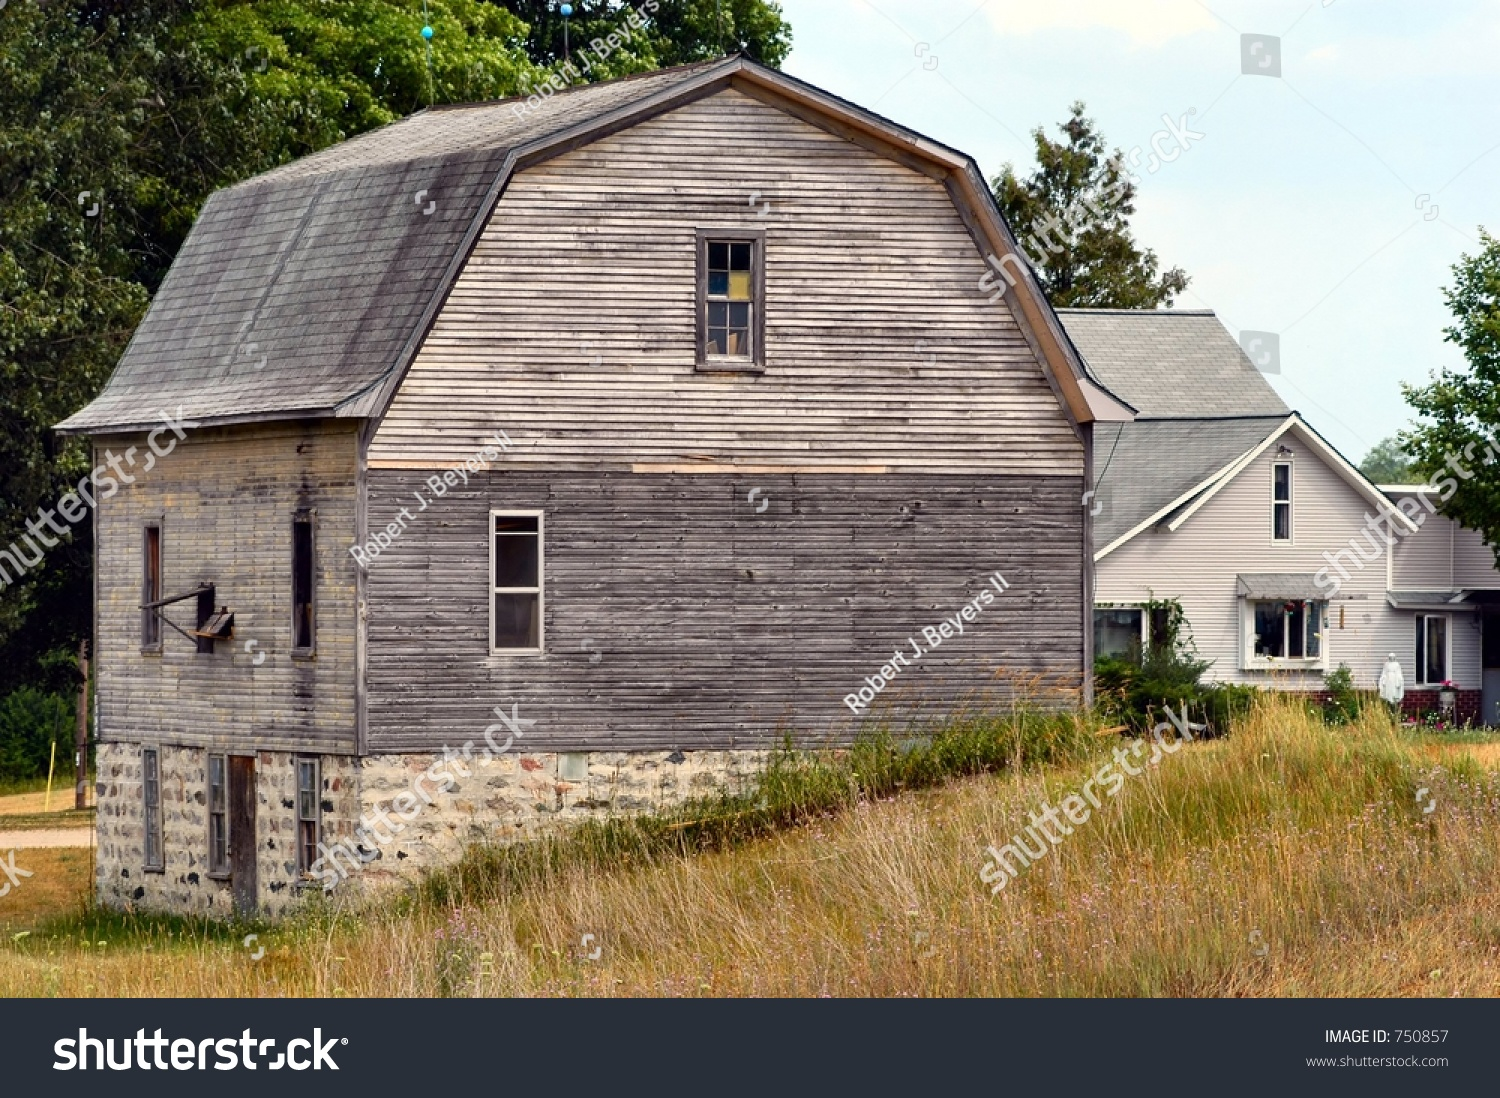 Old Barn Build On Hillside On Stock Photo Edit Now 750857